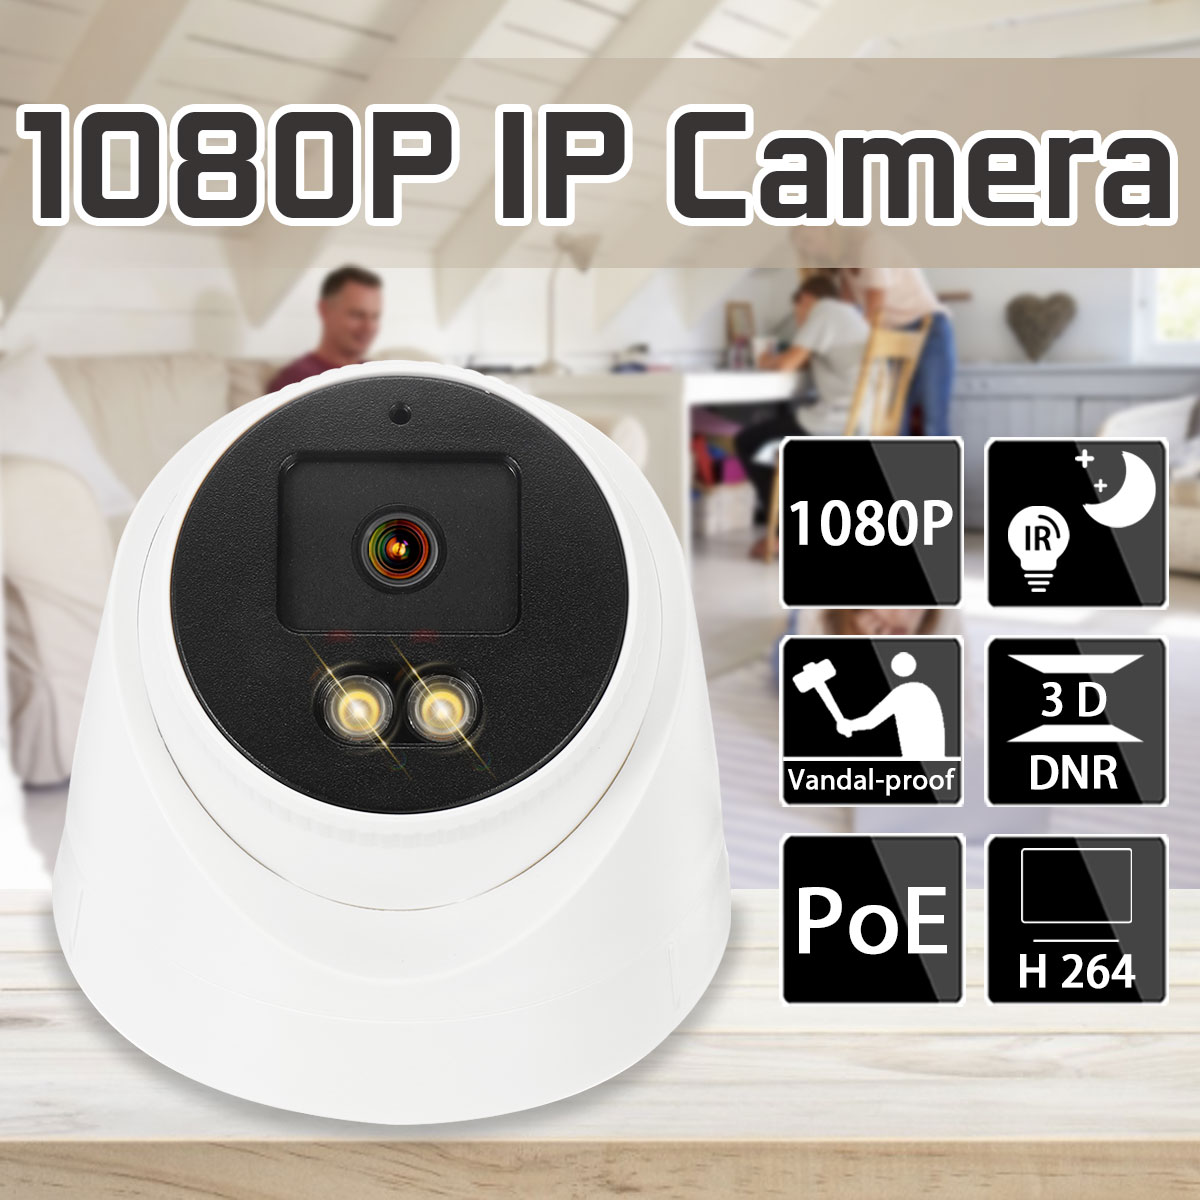 IP Camera Wifi Camera Full-color Night Vision 2MP Security Outdoor Surveillance Camera CCTV Nightvision Video Surveillance POE